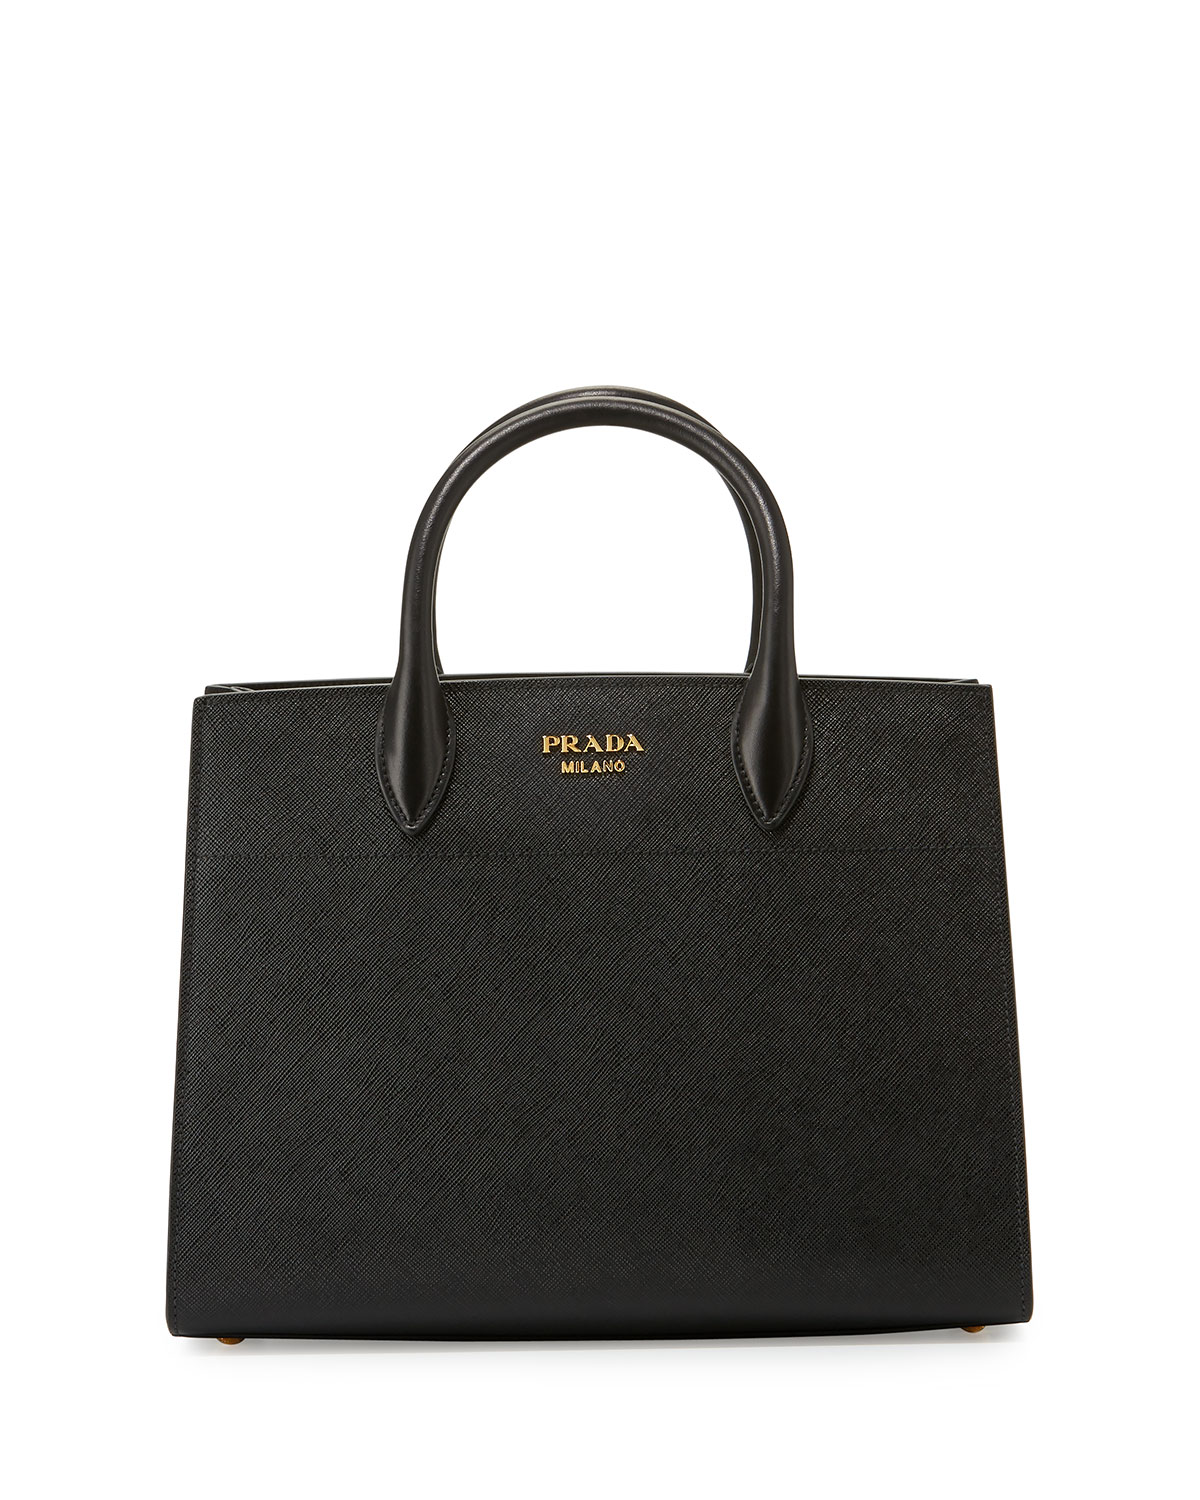 827773f21bd5 Prada Bibliotheque Medium Saffiano Top-Handle Tote Bag